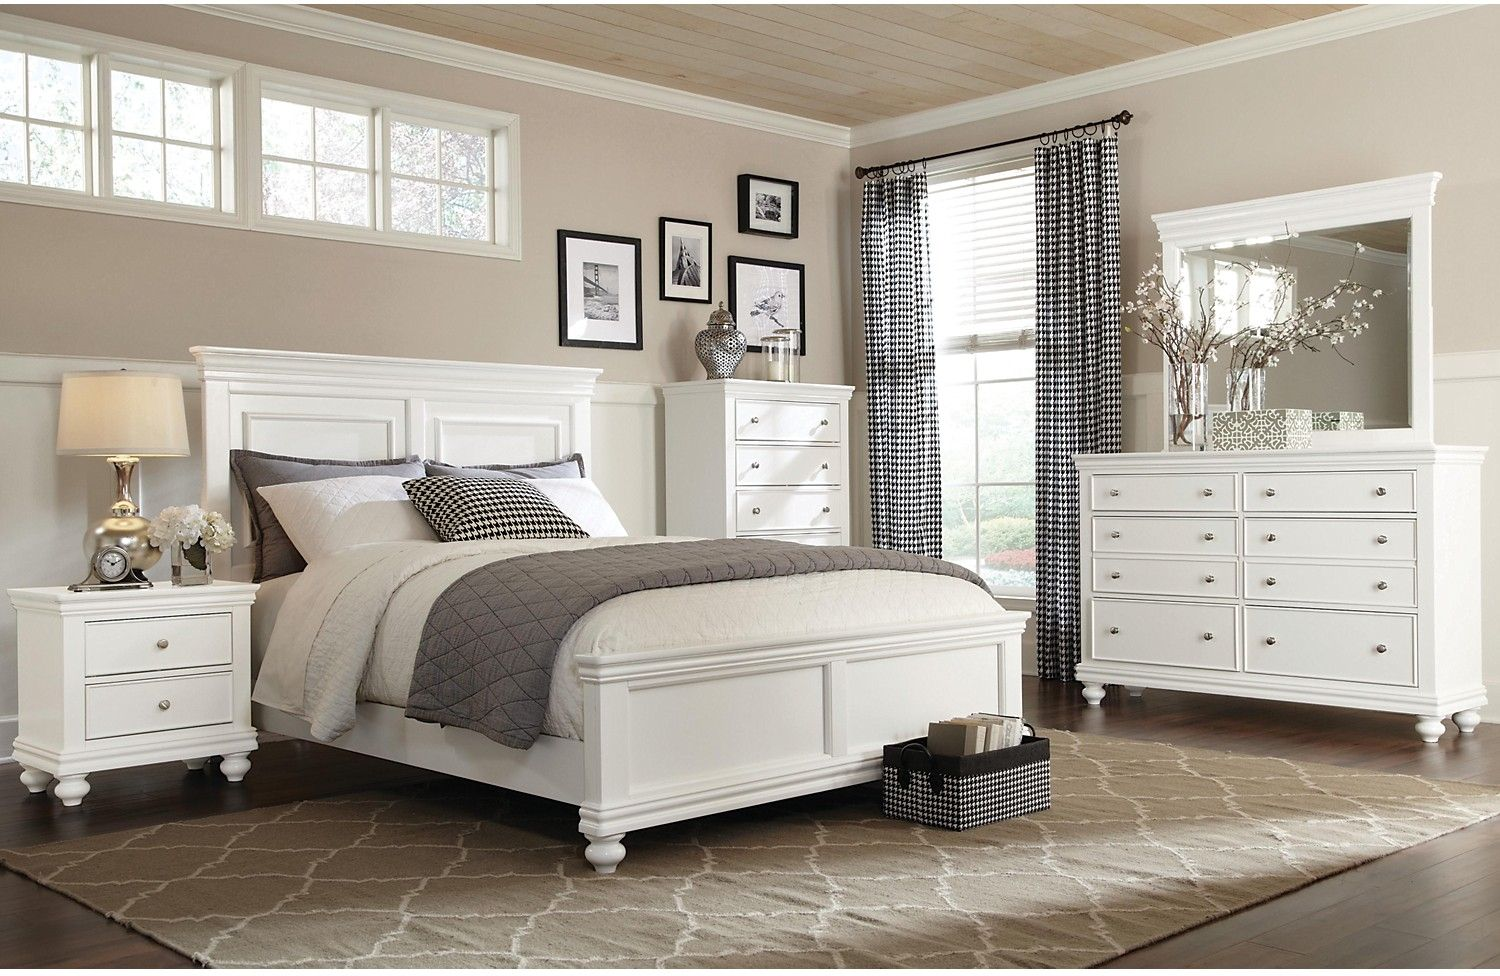 Two Bedroom Set Bridgeport 6 Piece Queen Bedroom Set White Queen